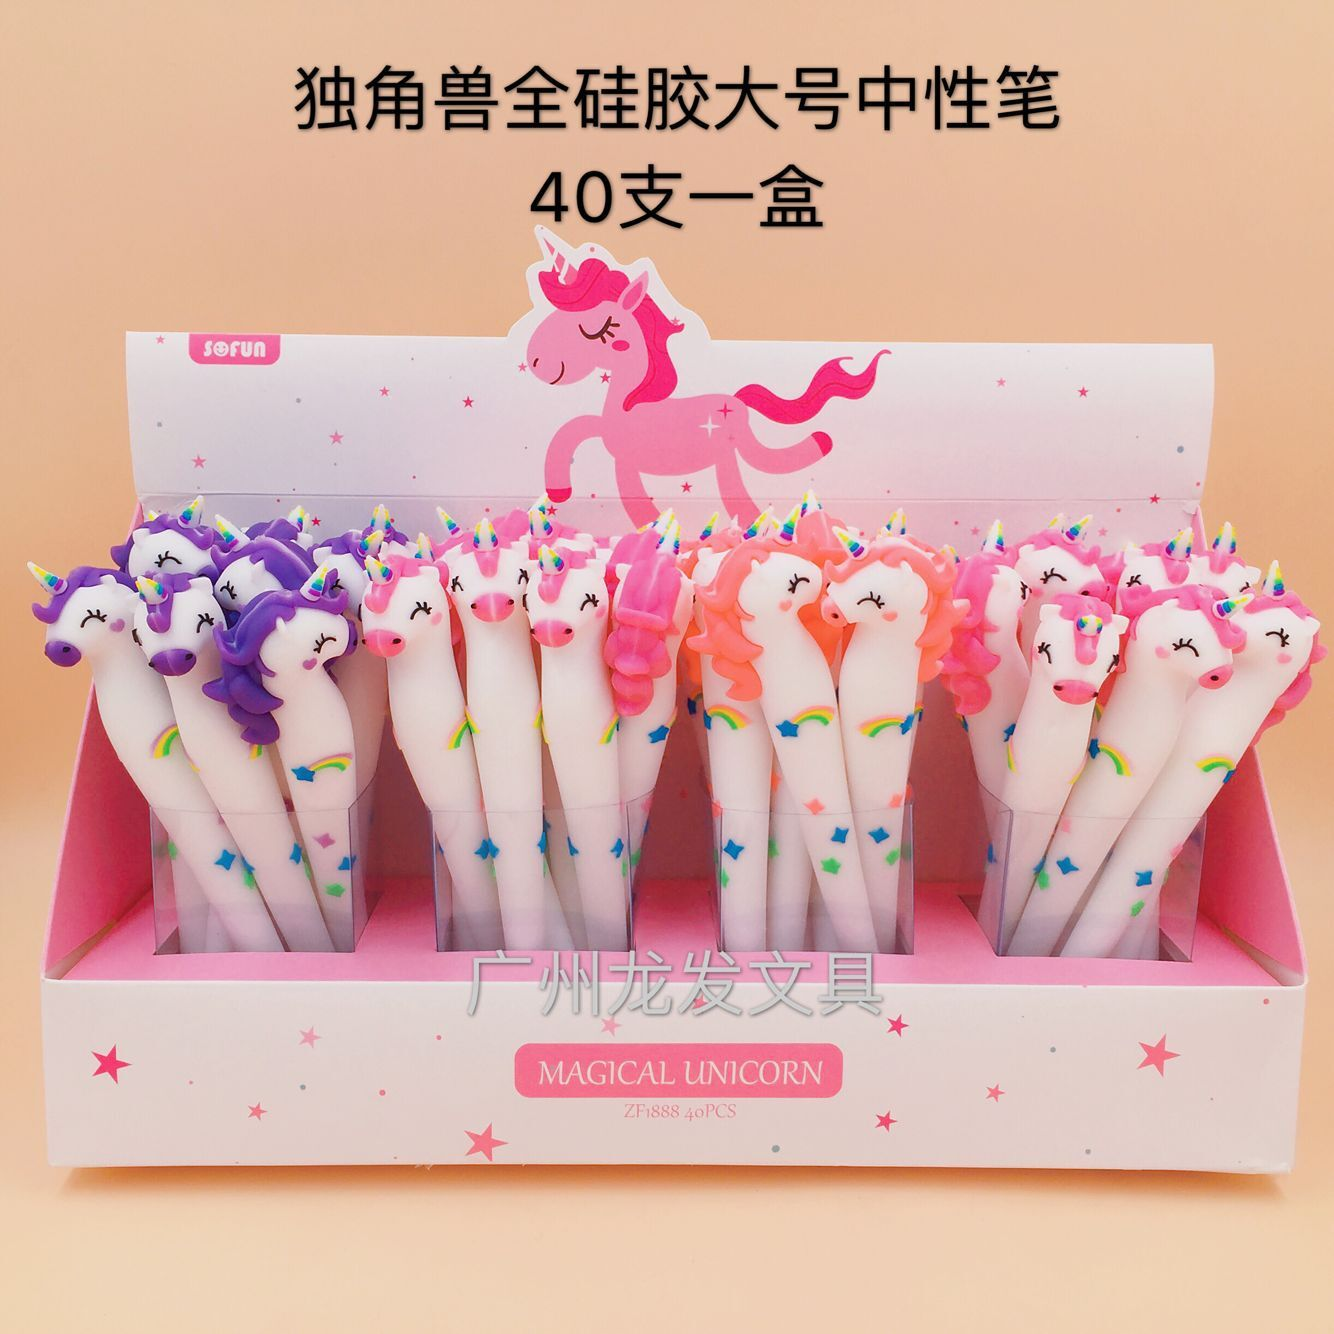 40 pcs Gel Pens Silicone unicorn black colored kawaii gift gel ink pens pens for writing Cute stationery office school supplies-in Gel Pens from Office & School Supplies    1